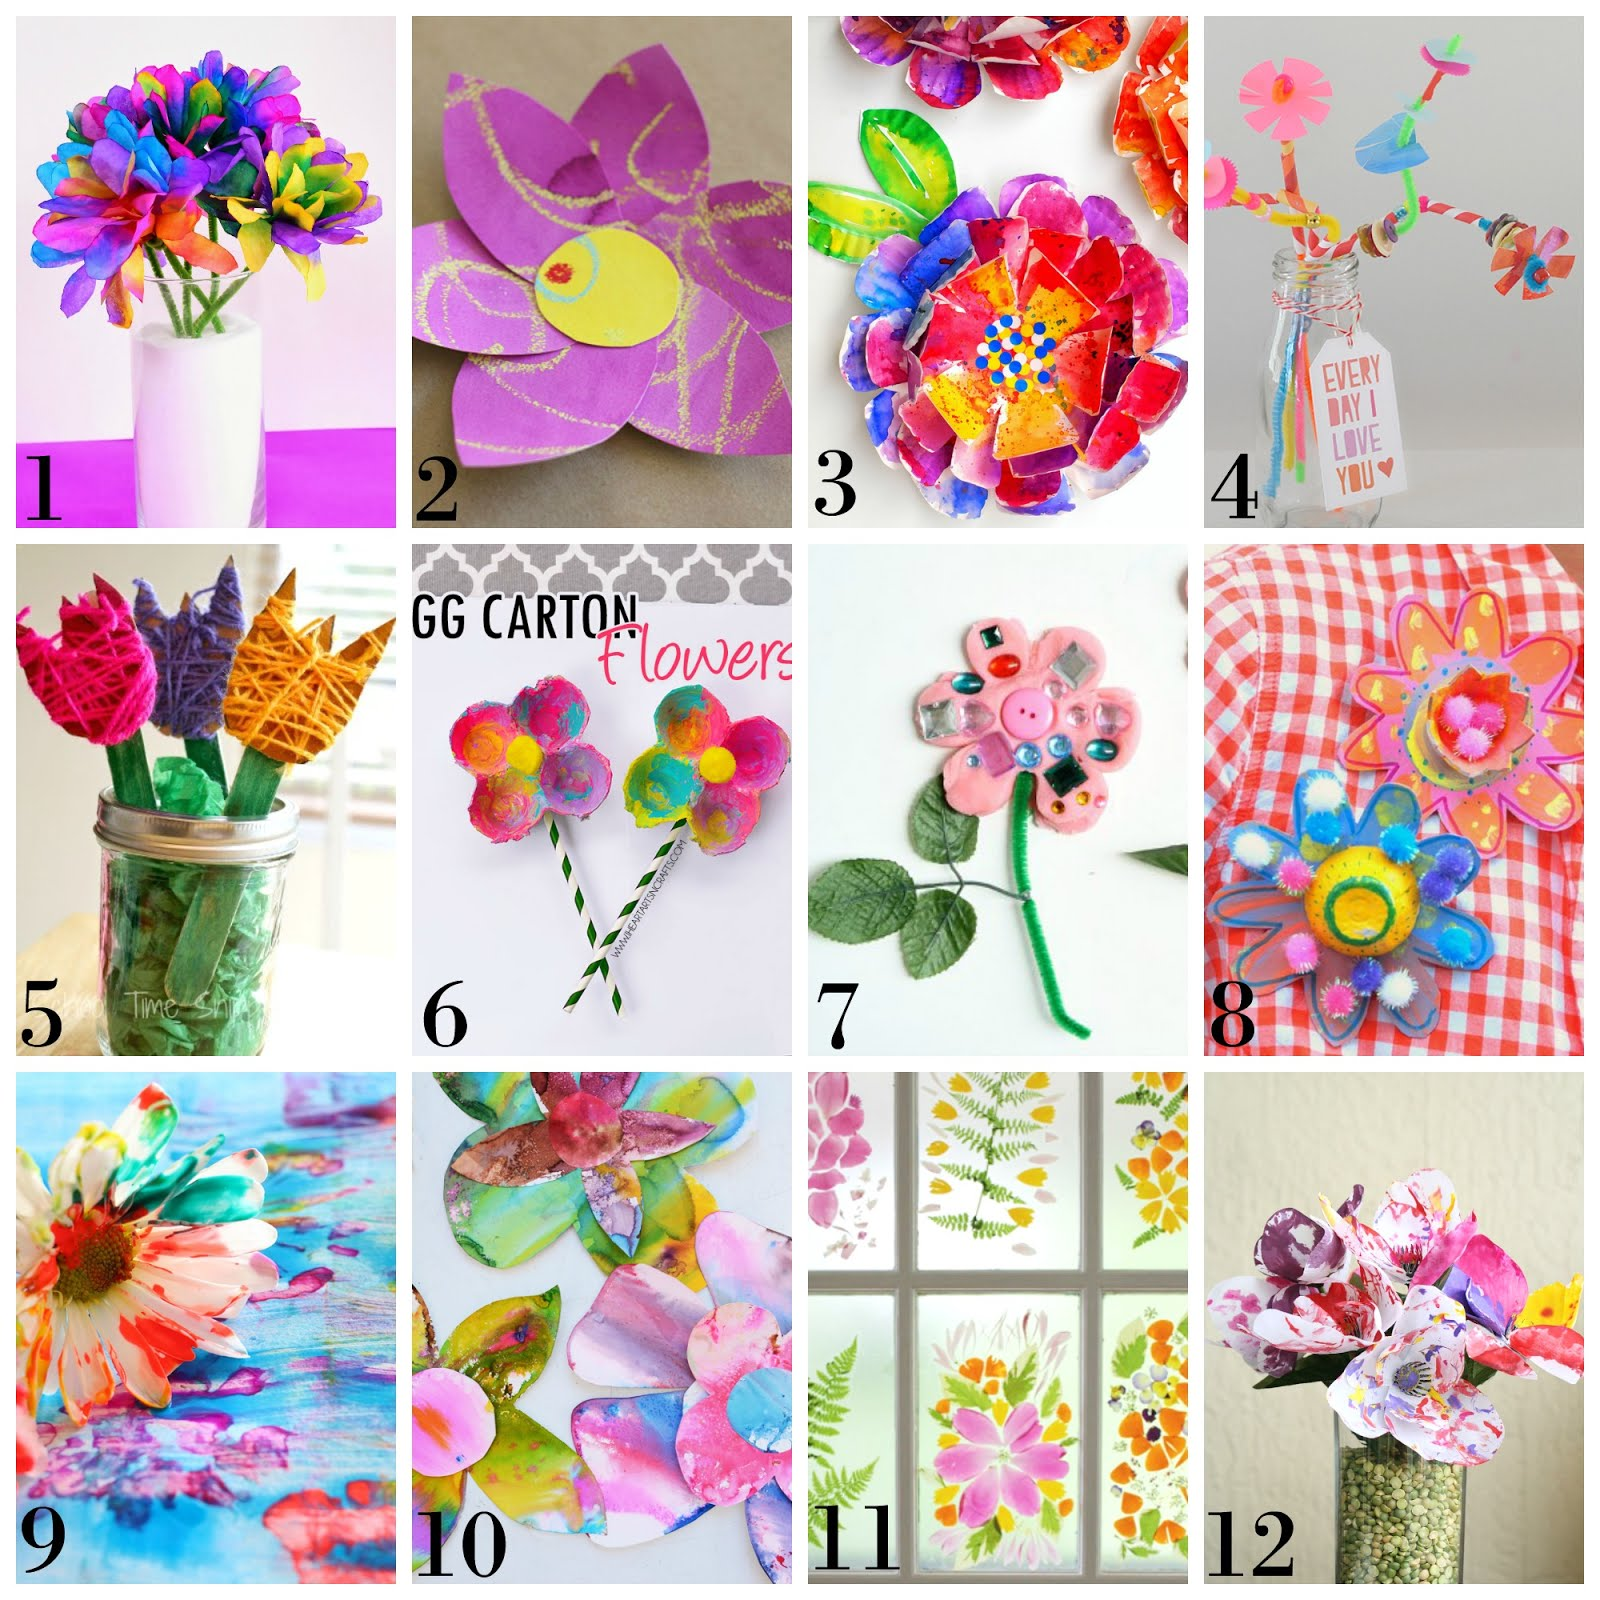 12 beautiful spring flower process art ideas for kids 12 beautiful spring flower process art ideas for kids from fun at home with kids izmirmasajfo